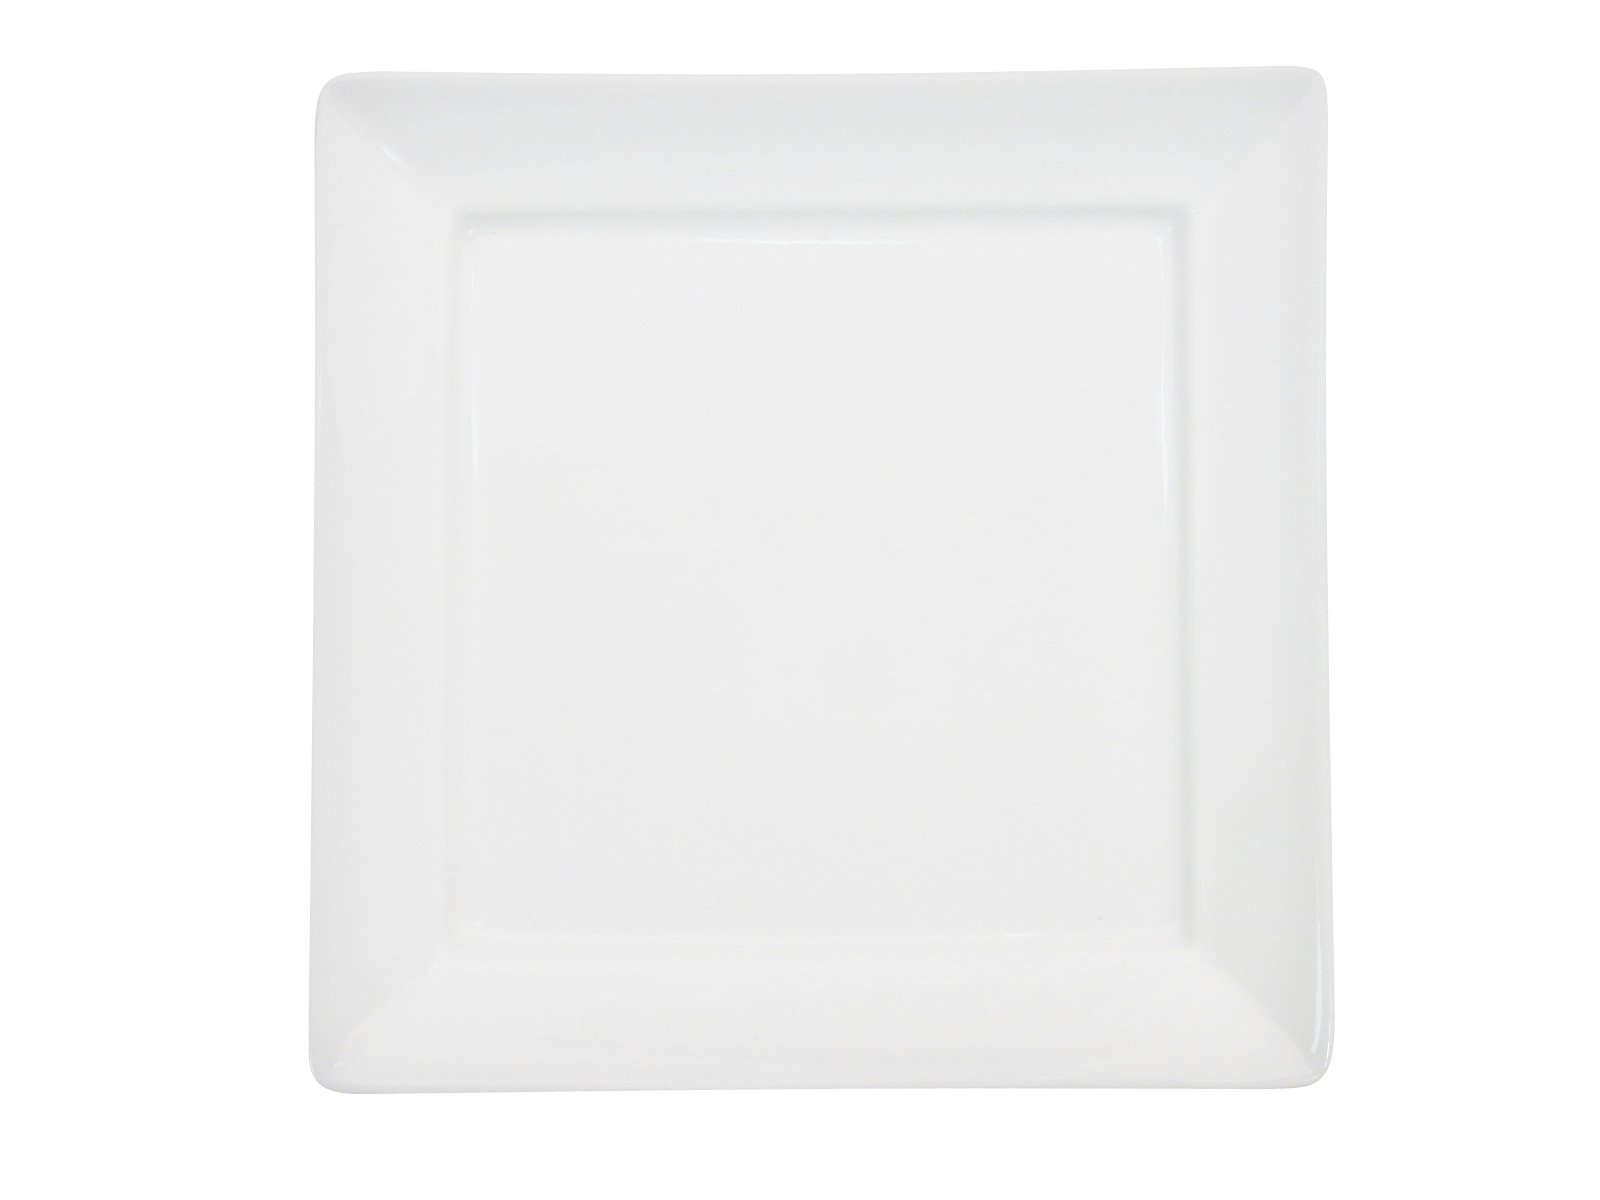 CAC China F-SQ6 Paris-French Square 6-Inch New Bone White Porcelain Thin Square Plate, Box of 36